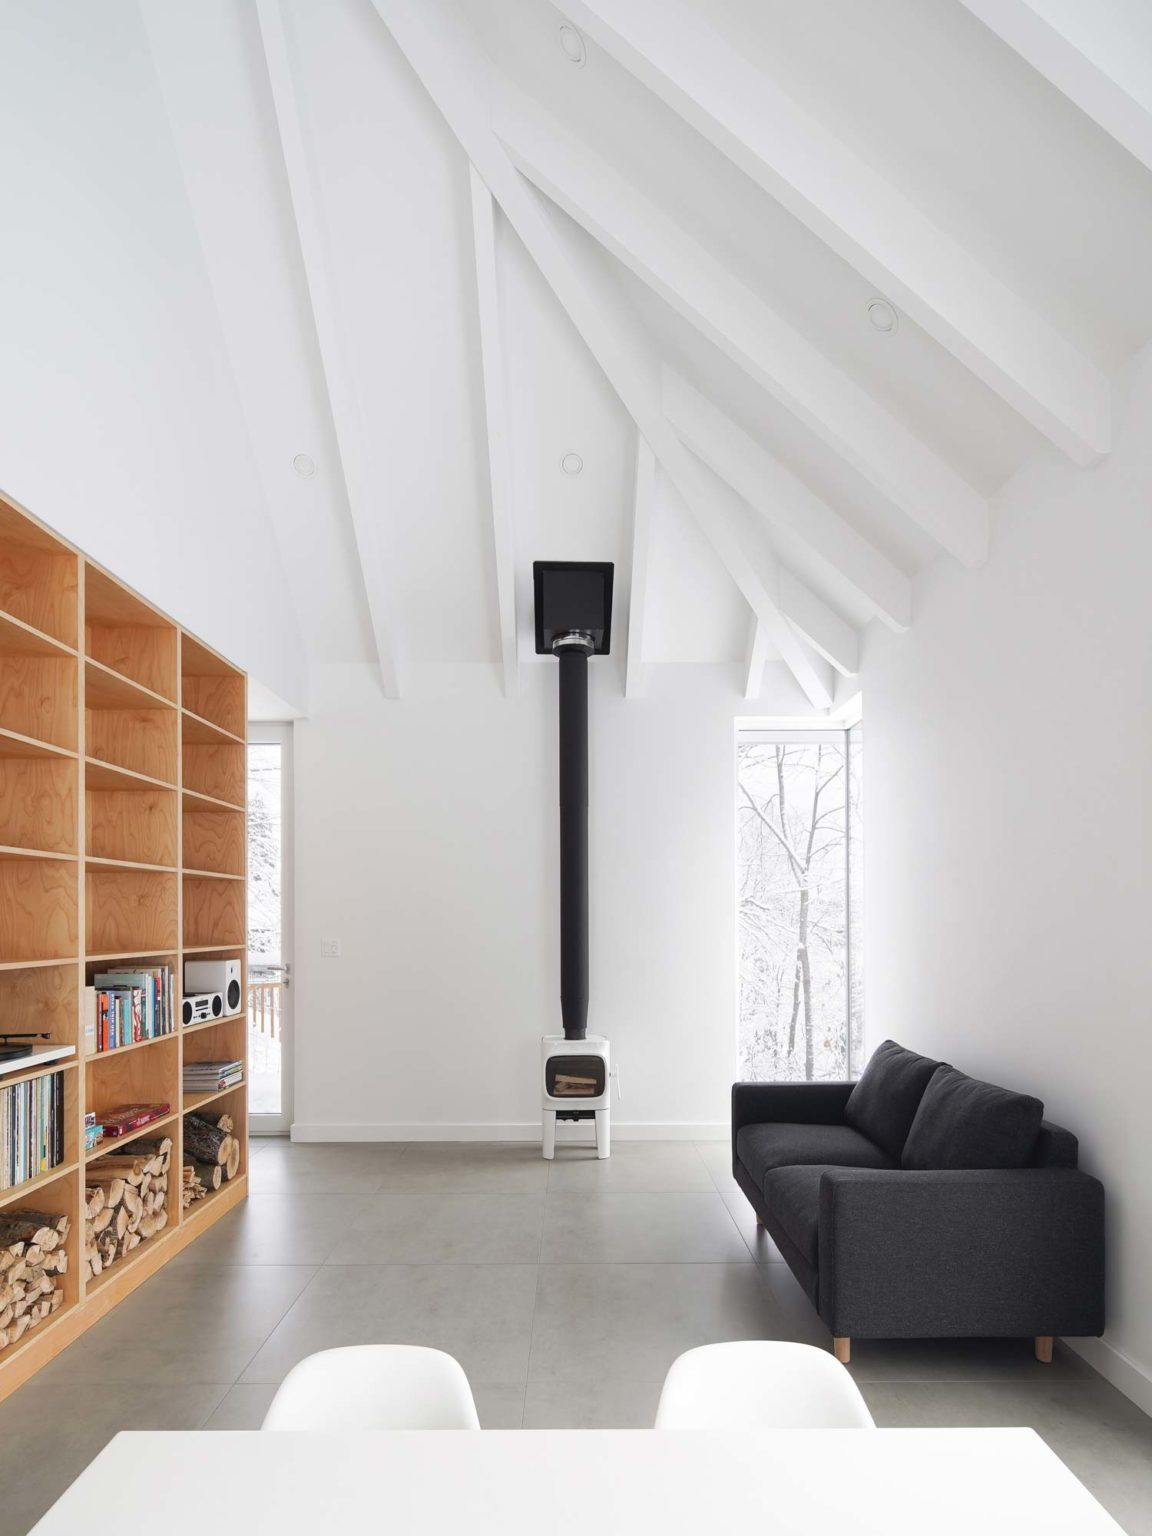 The living room is done with a grey sofa, a small fireplace and a large plywood storage units that doubles as a space divider